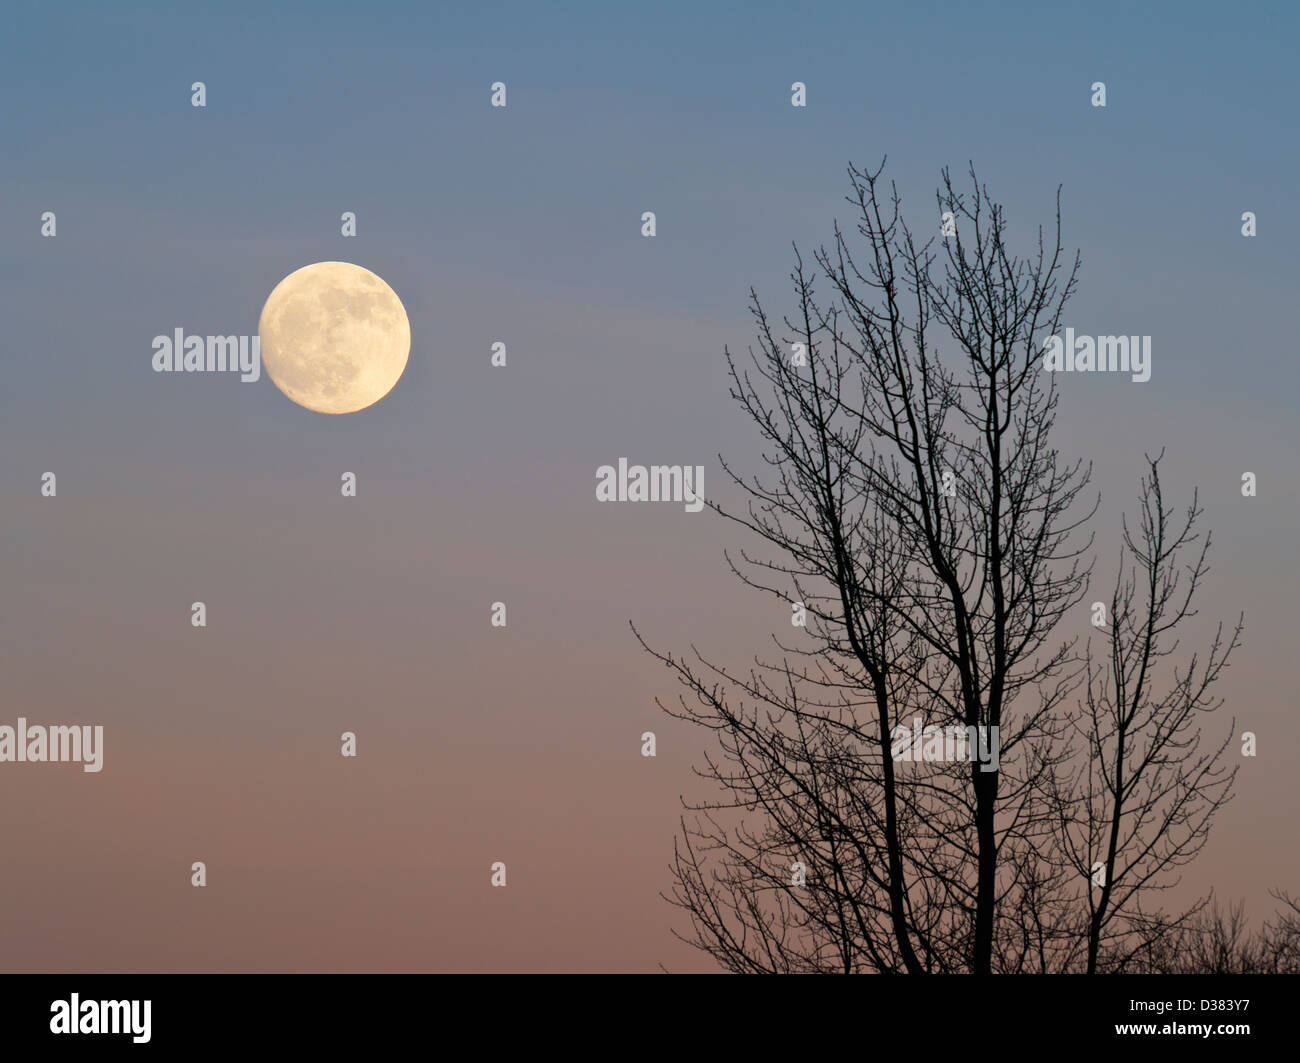 Full moon and bare sycamore tree. The moon has been digitally enlarged. - Stock Image